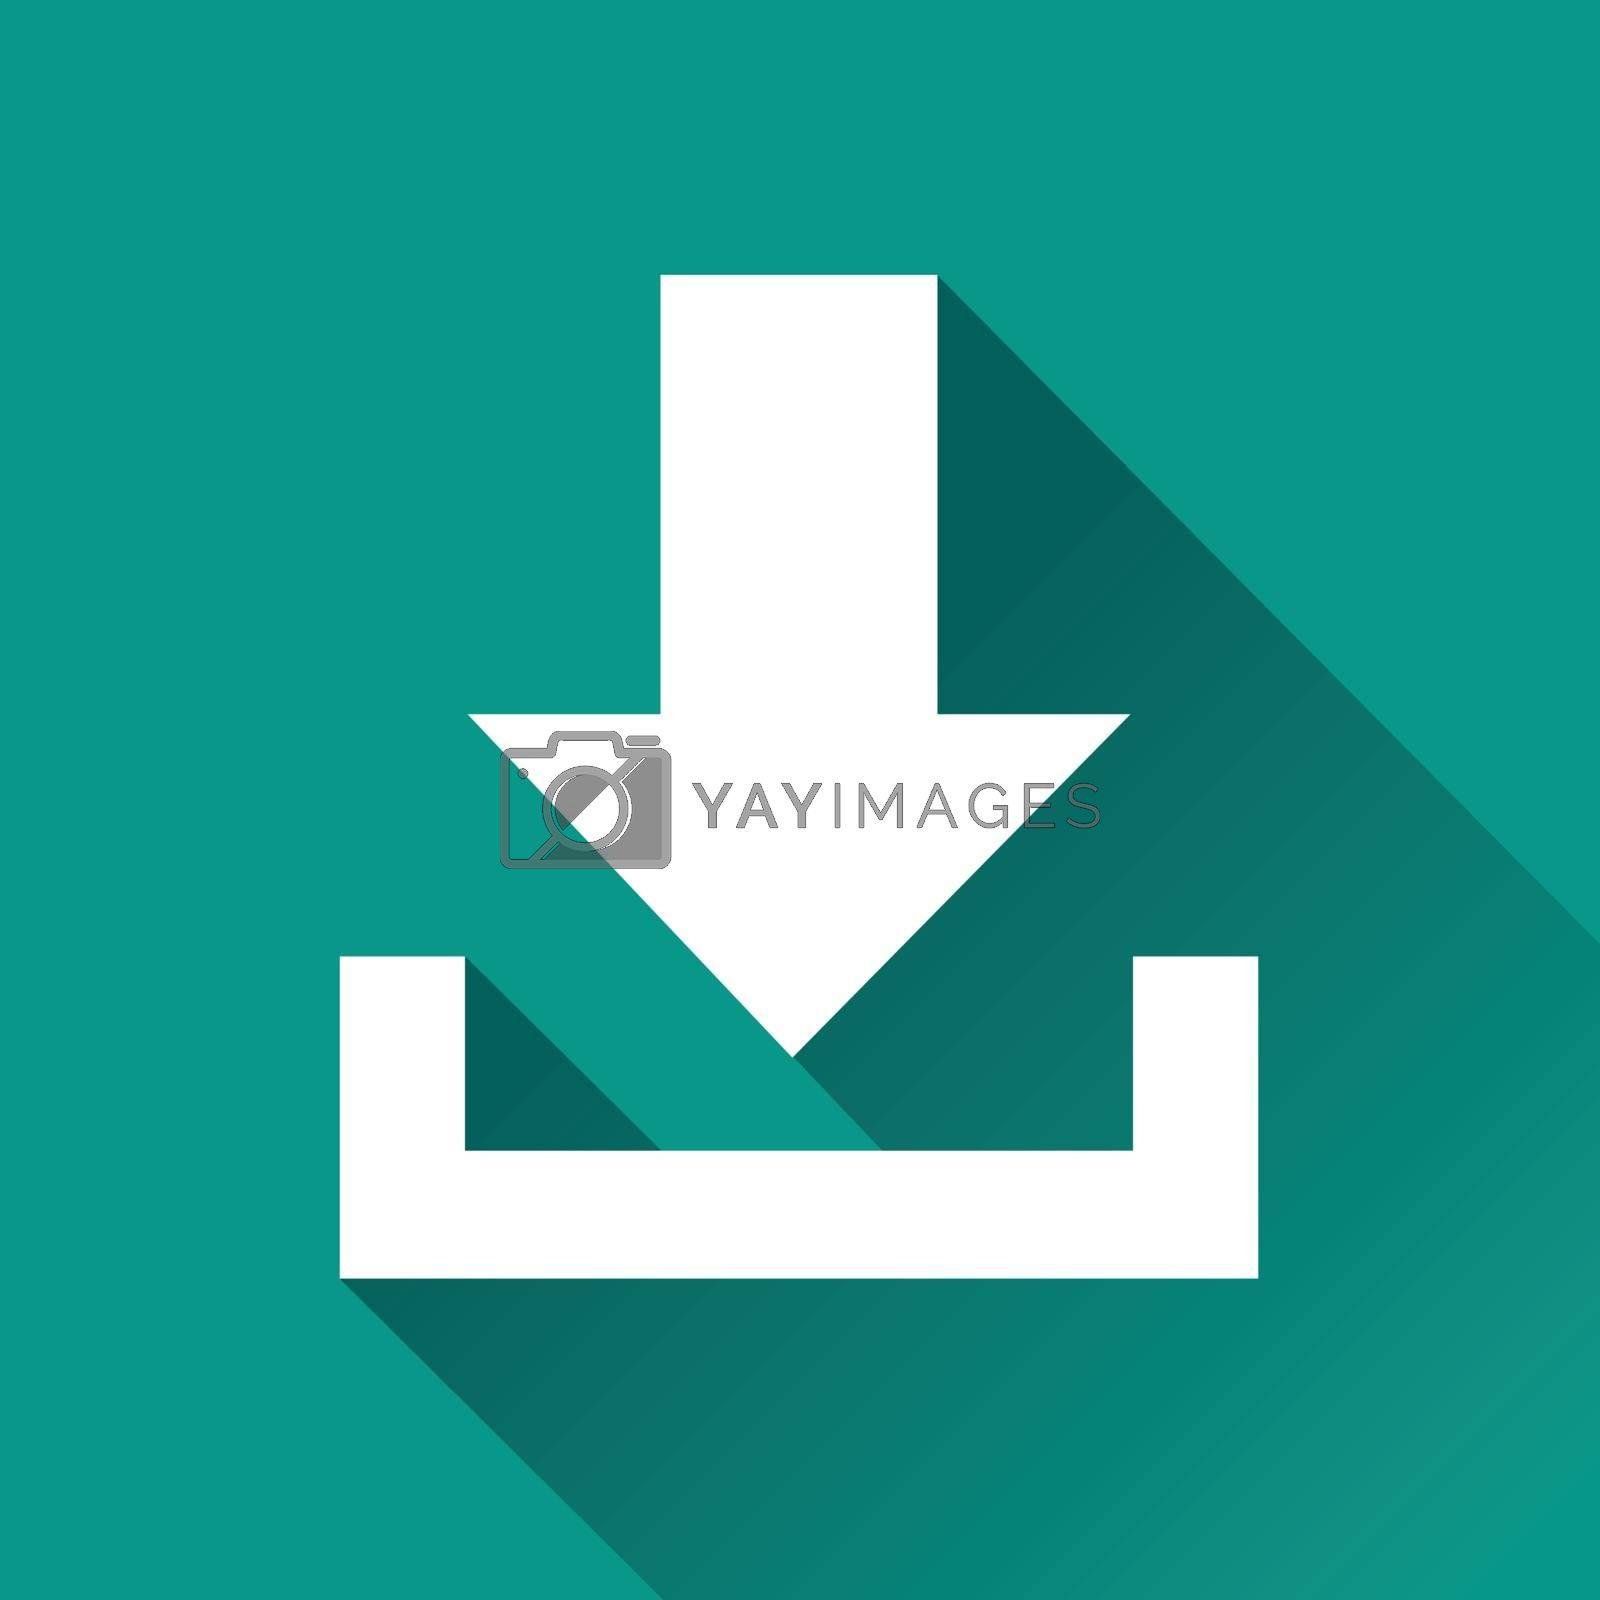 illustration of download flat design icon isolated